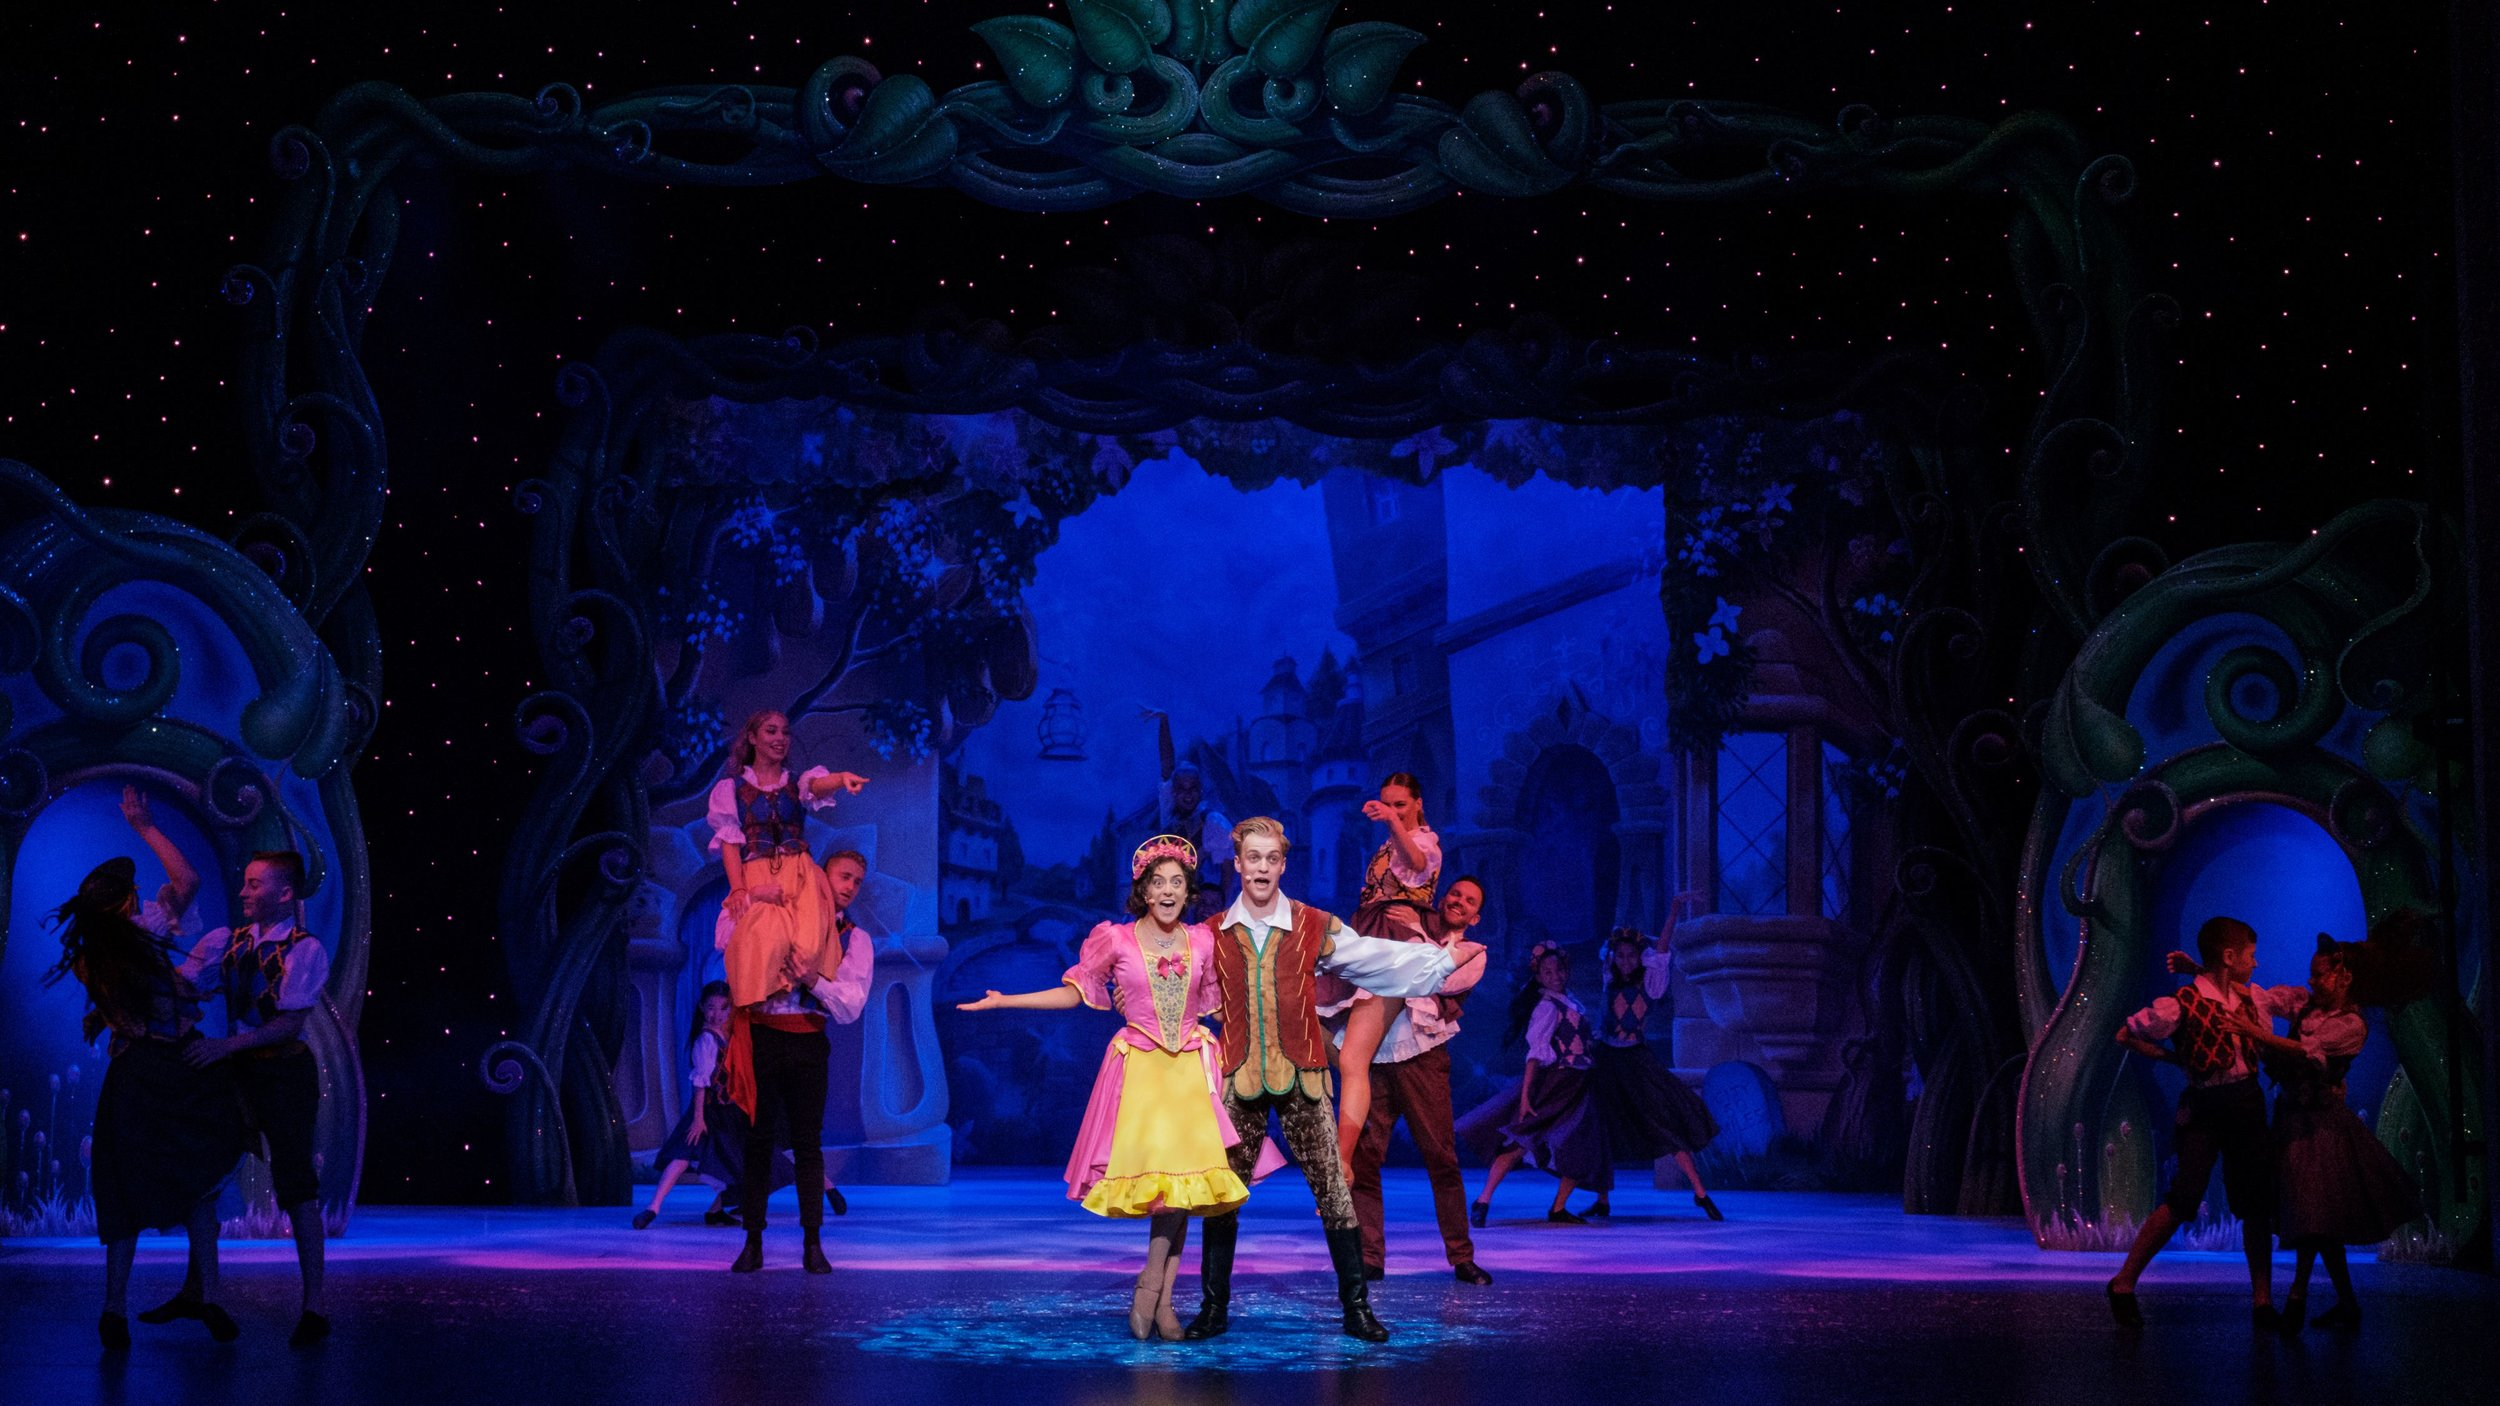 Jack and the Beanstalk - Sharing the traditions of pantomime with the whole family